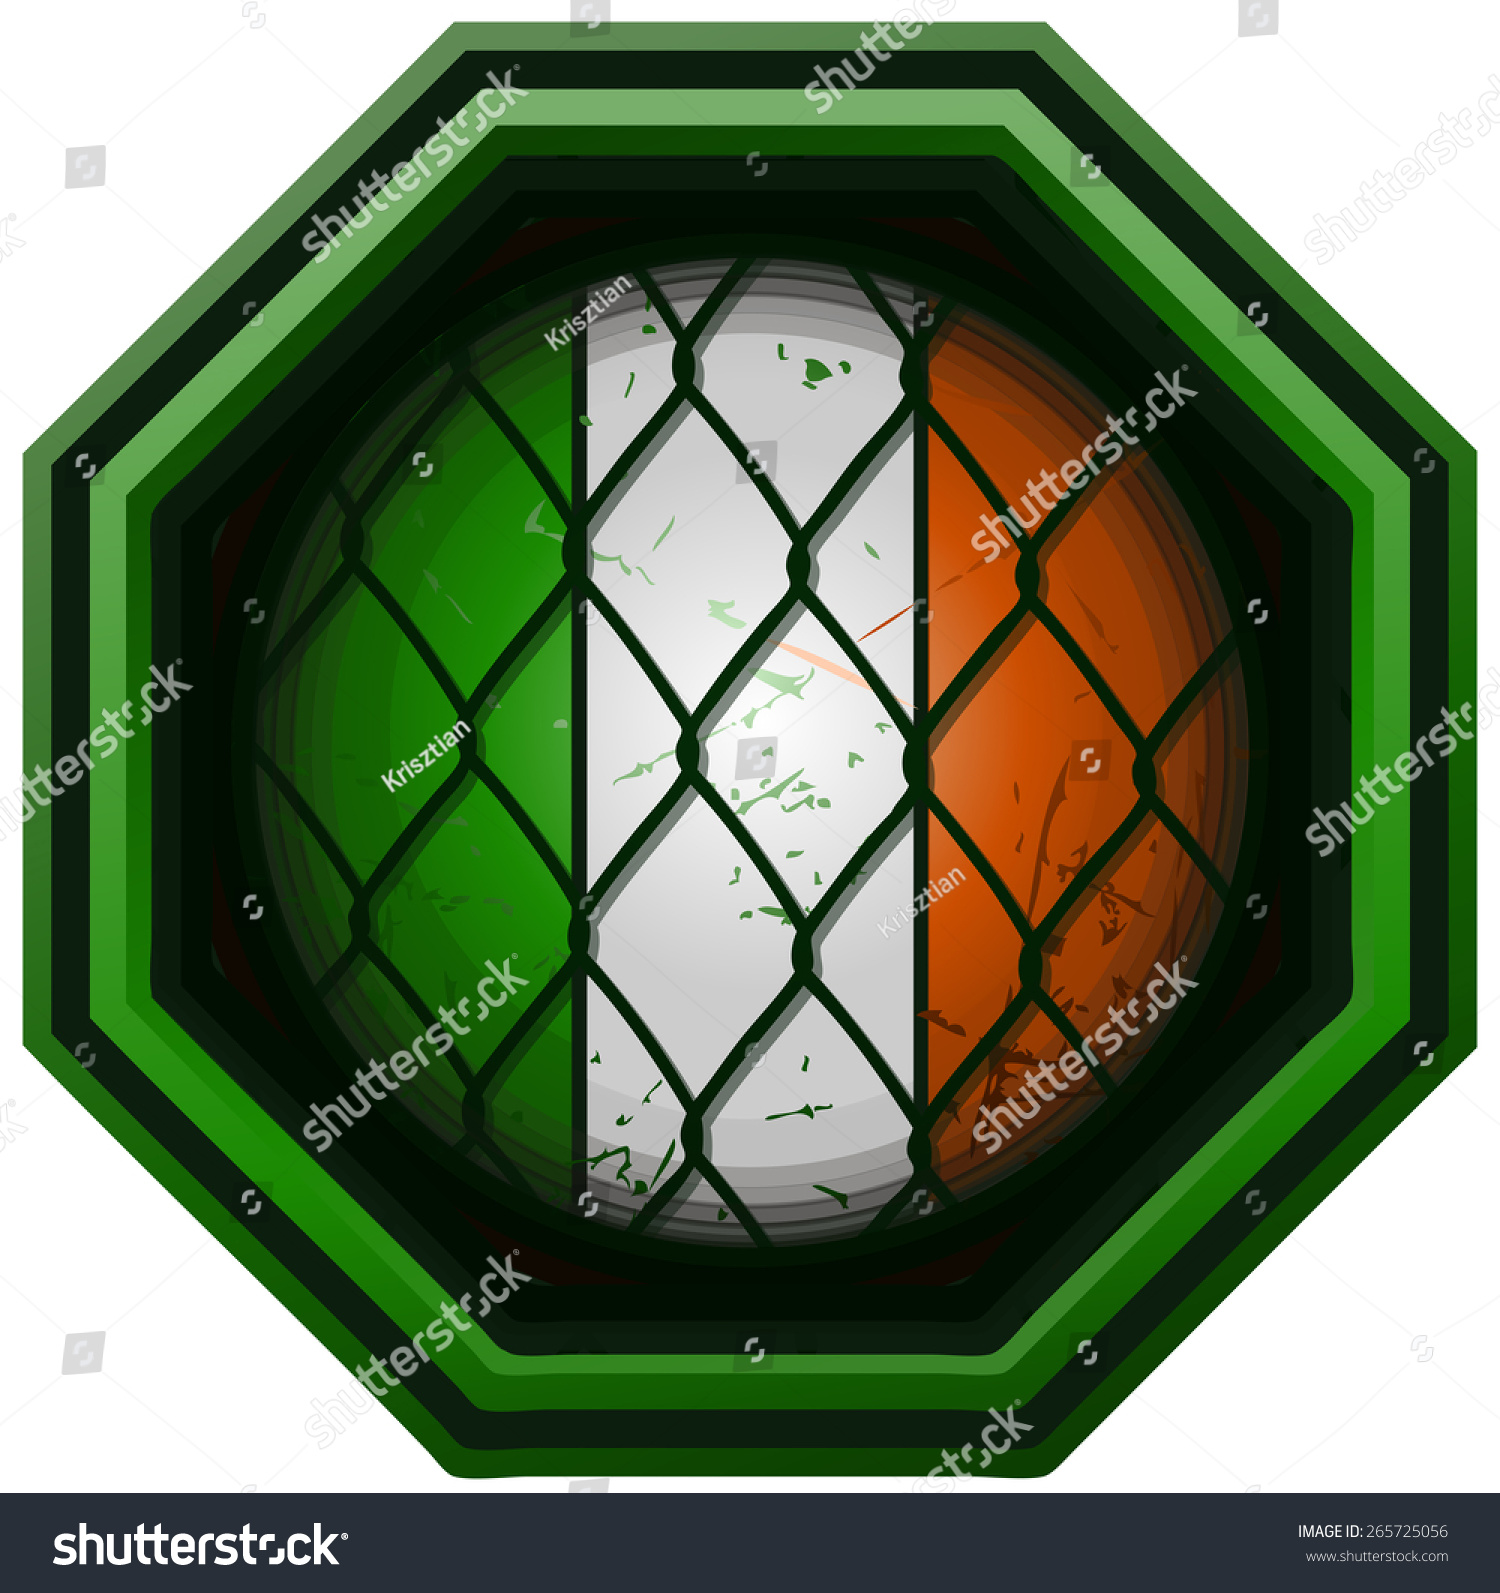 stock-vector-ireland-flag-mma-octagon-si